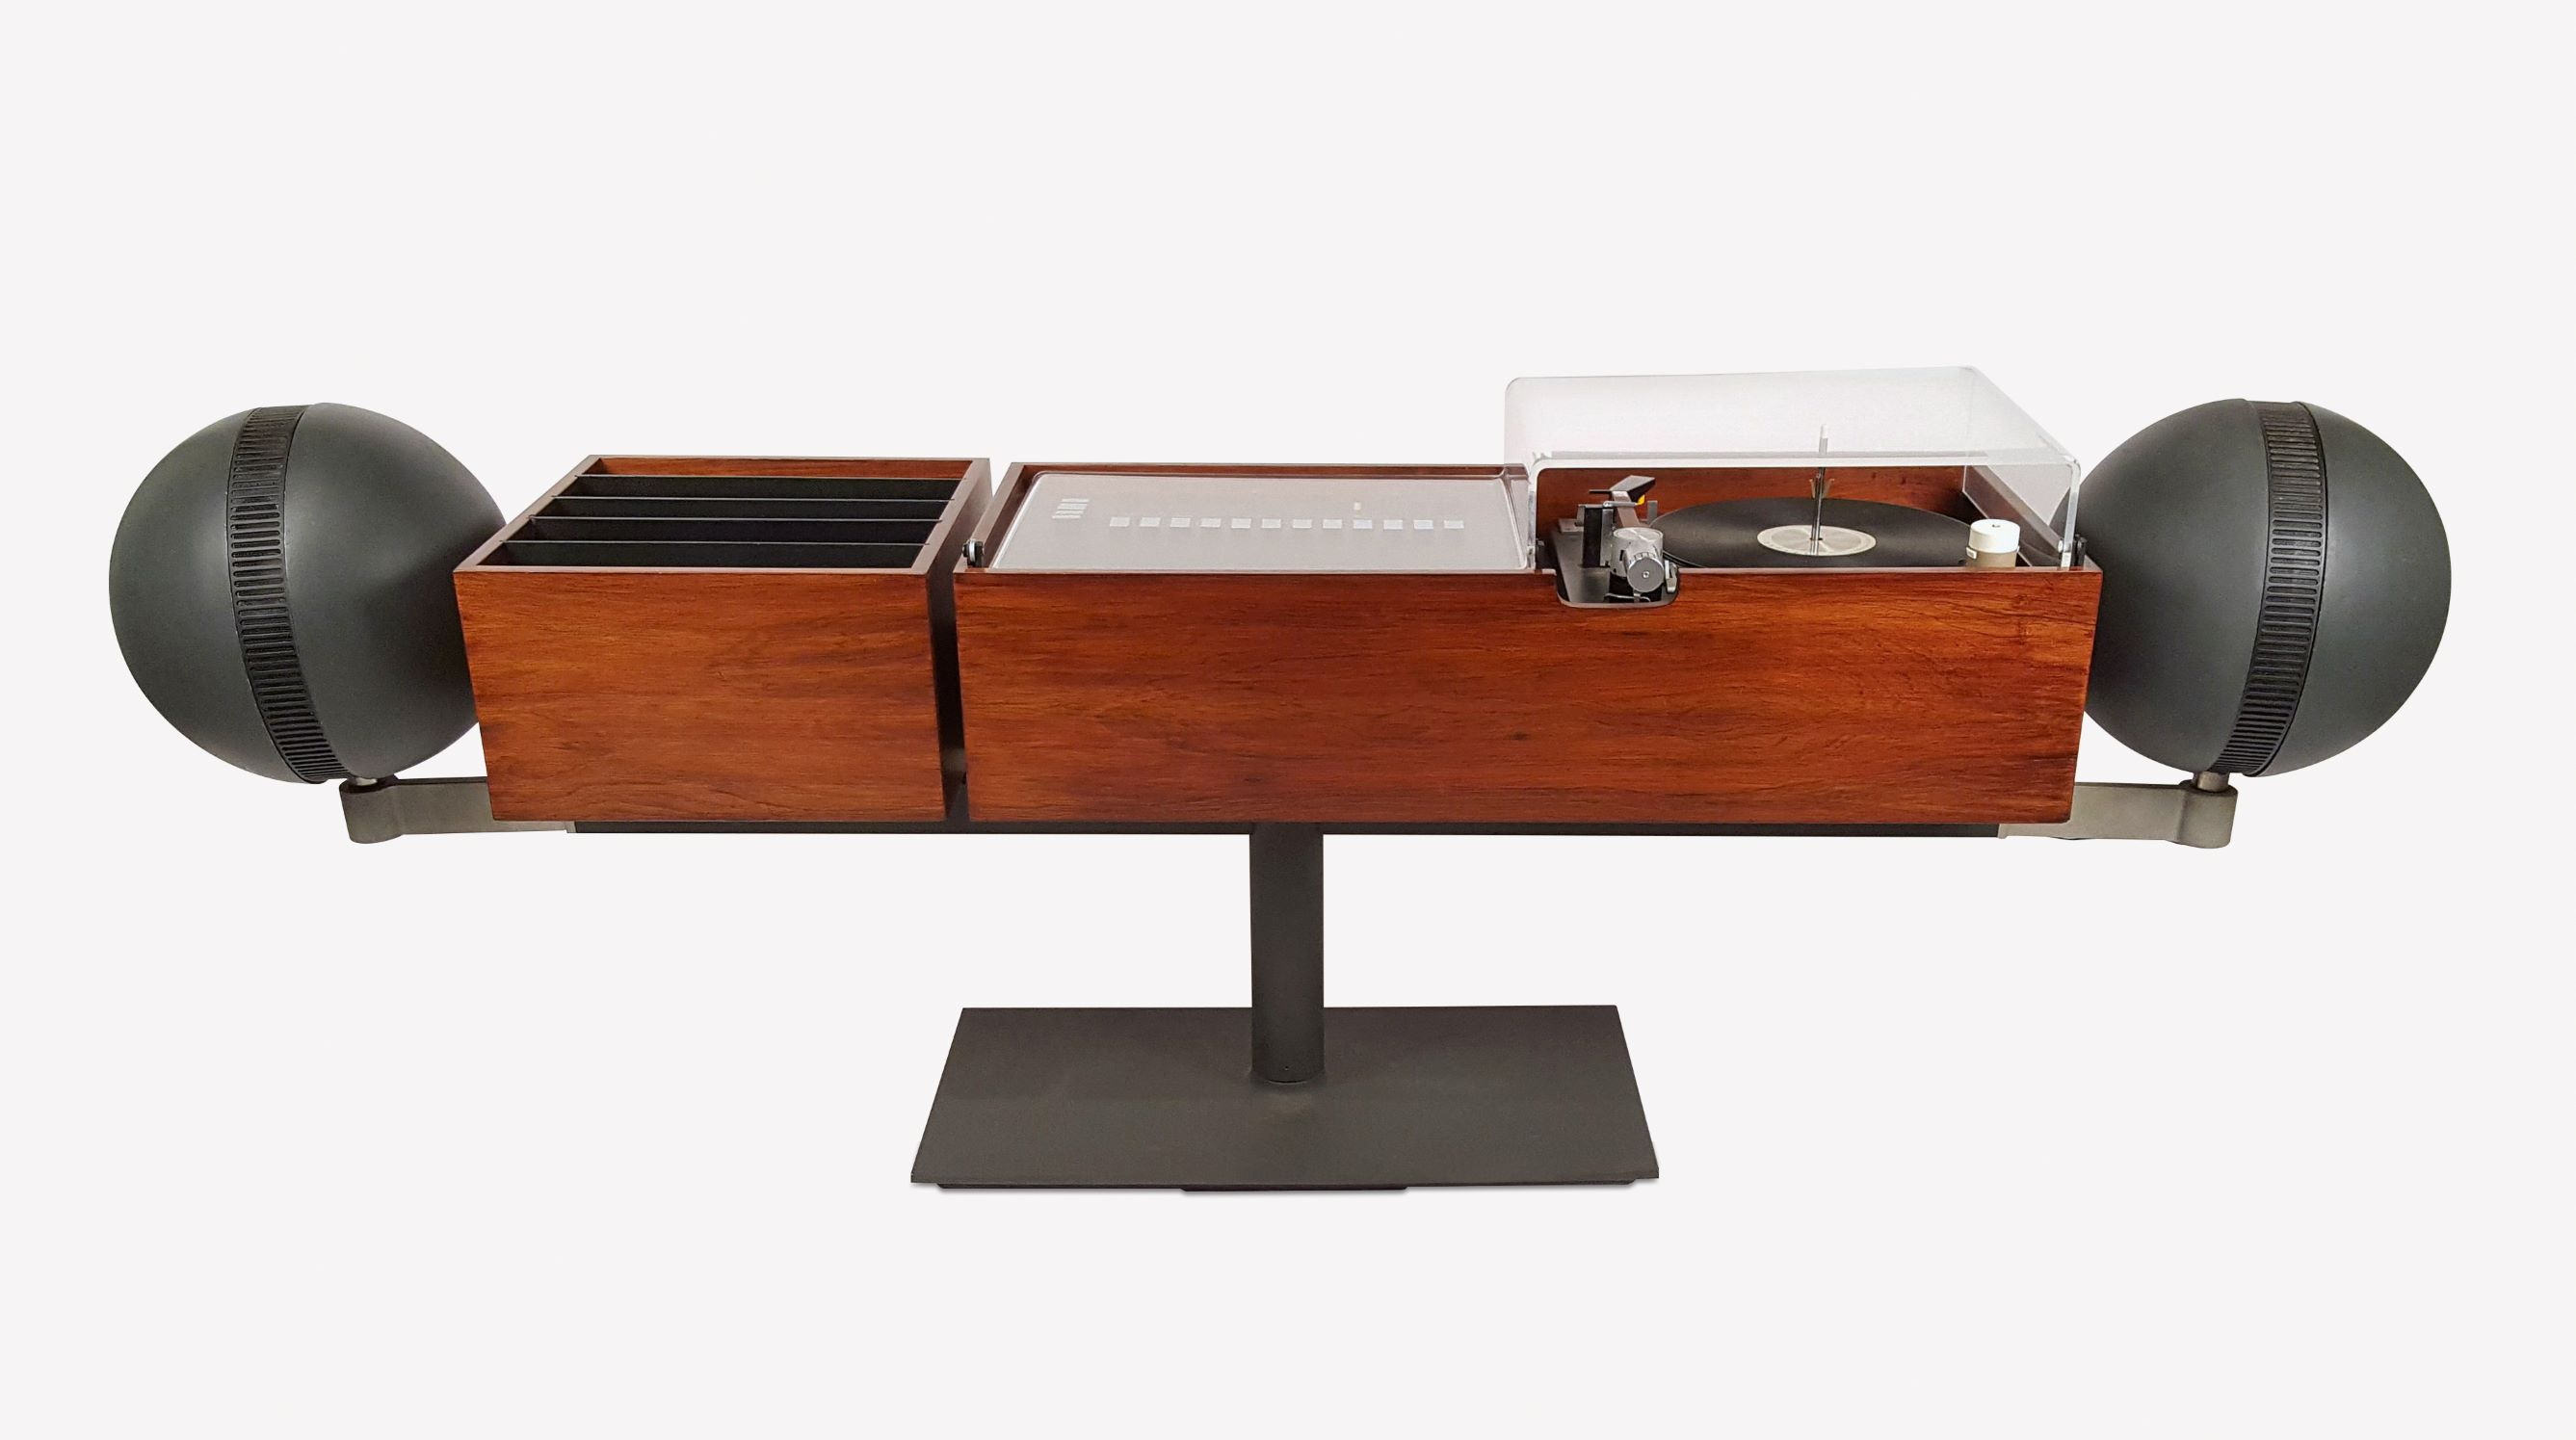 Project G2 Stereo, Hugh Spencer, Clairtone, 1966.